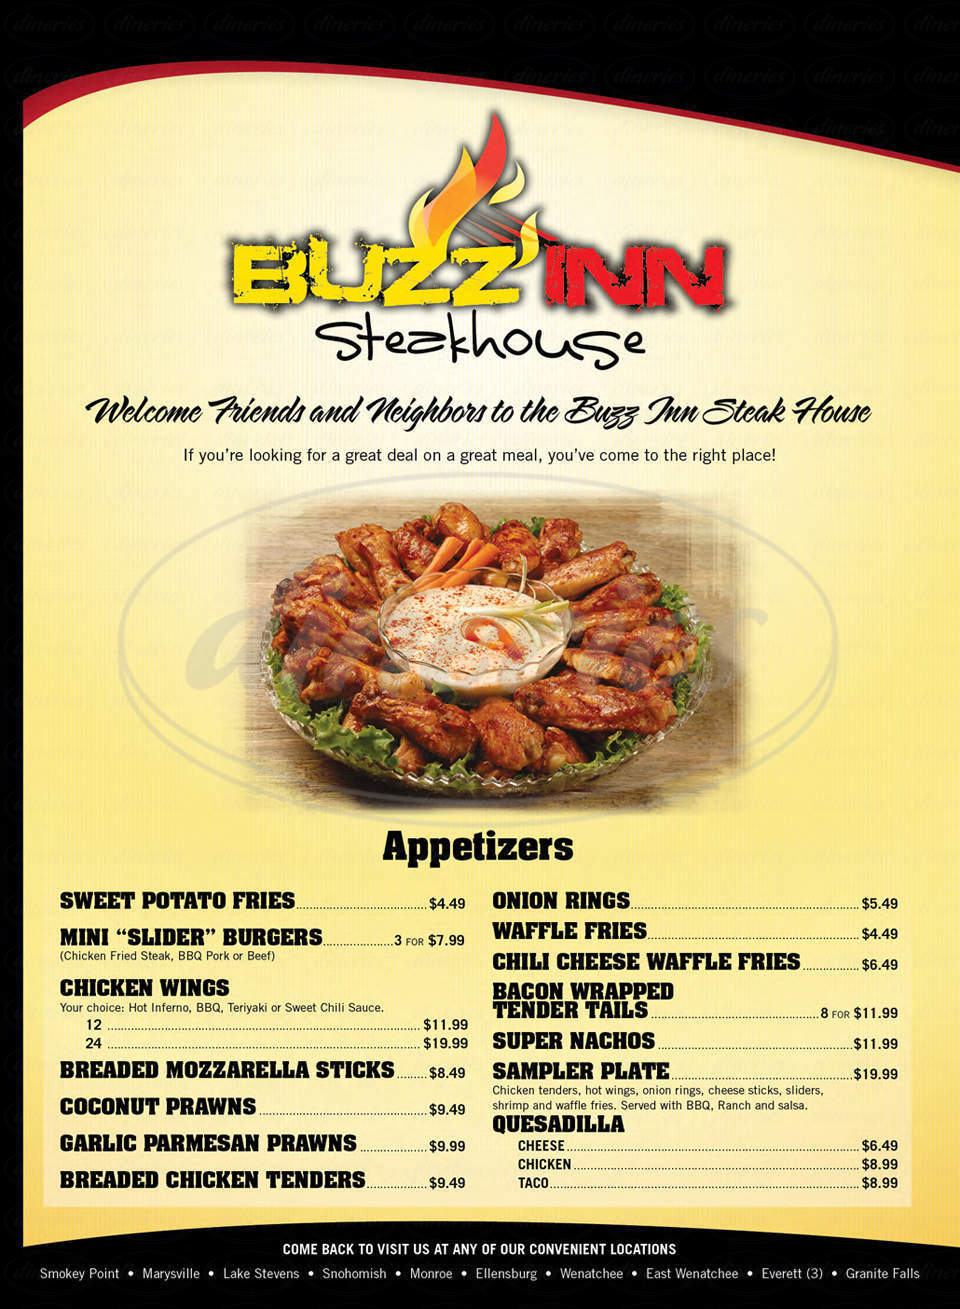 menu for Buzz Inn Steak House